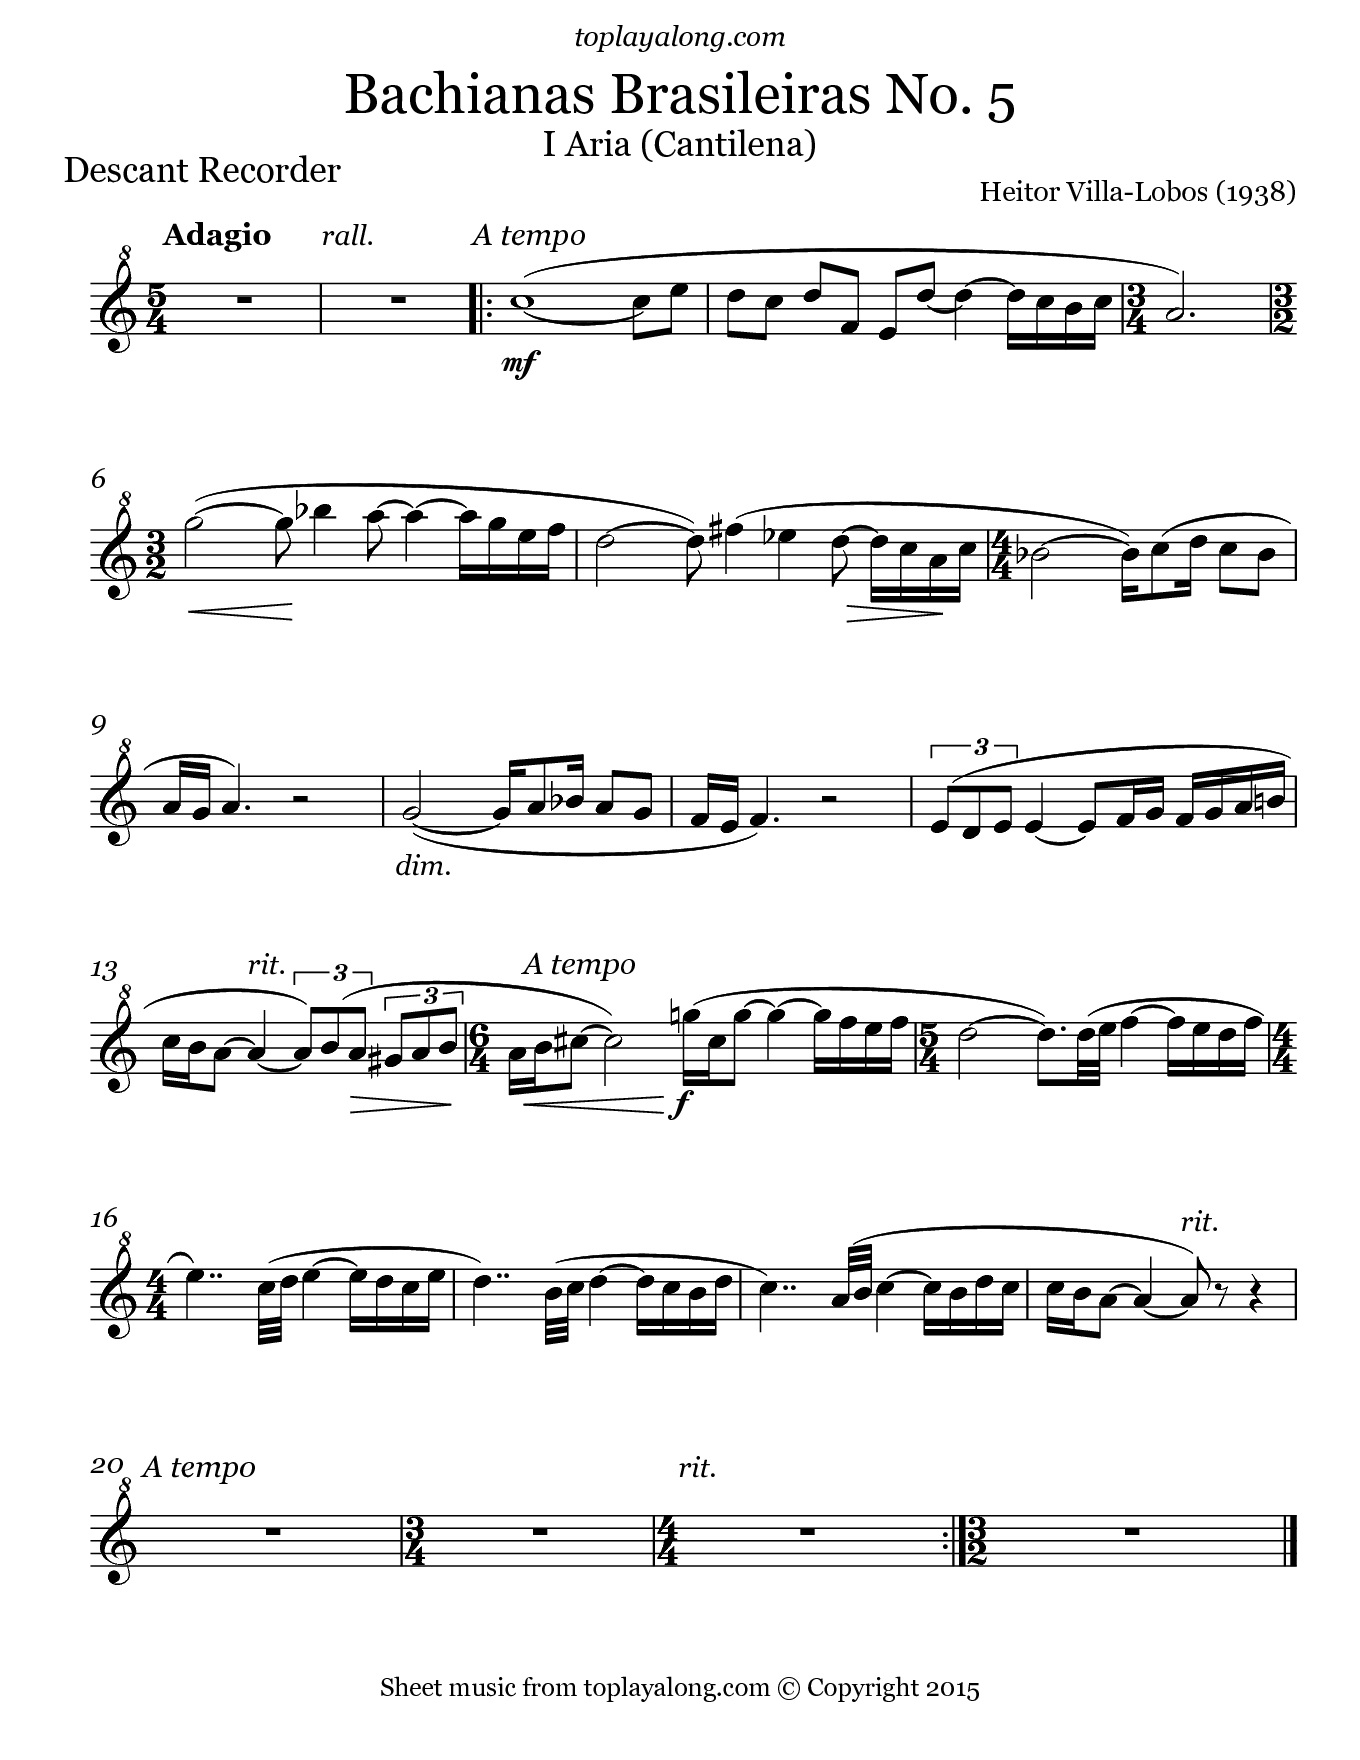 Bachianas Brasileiras No 5 by Villa-Lobos. Sheet music for Recorder, page 1.